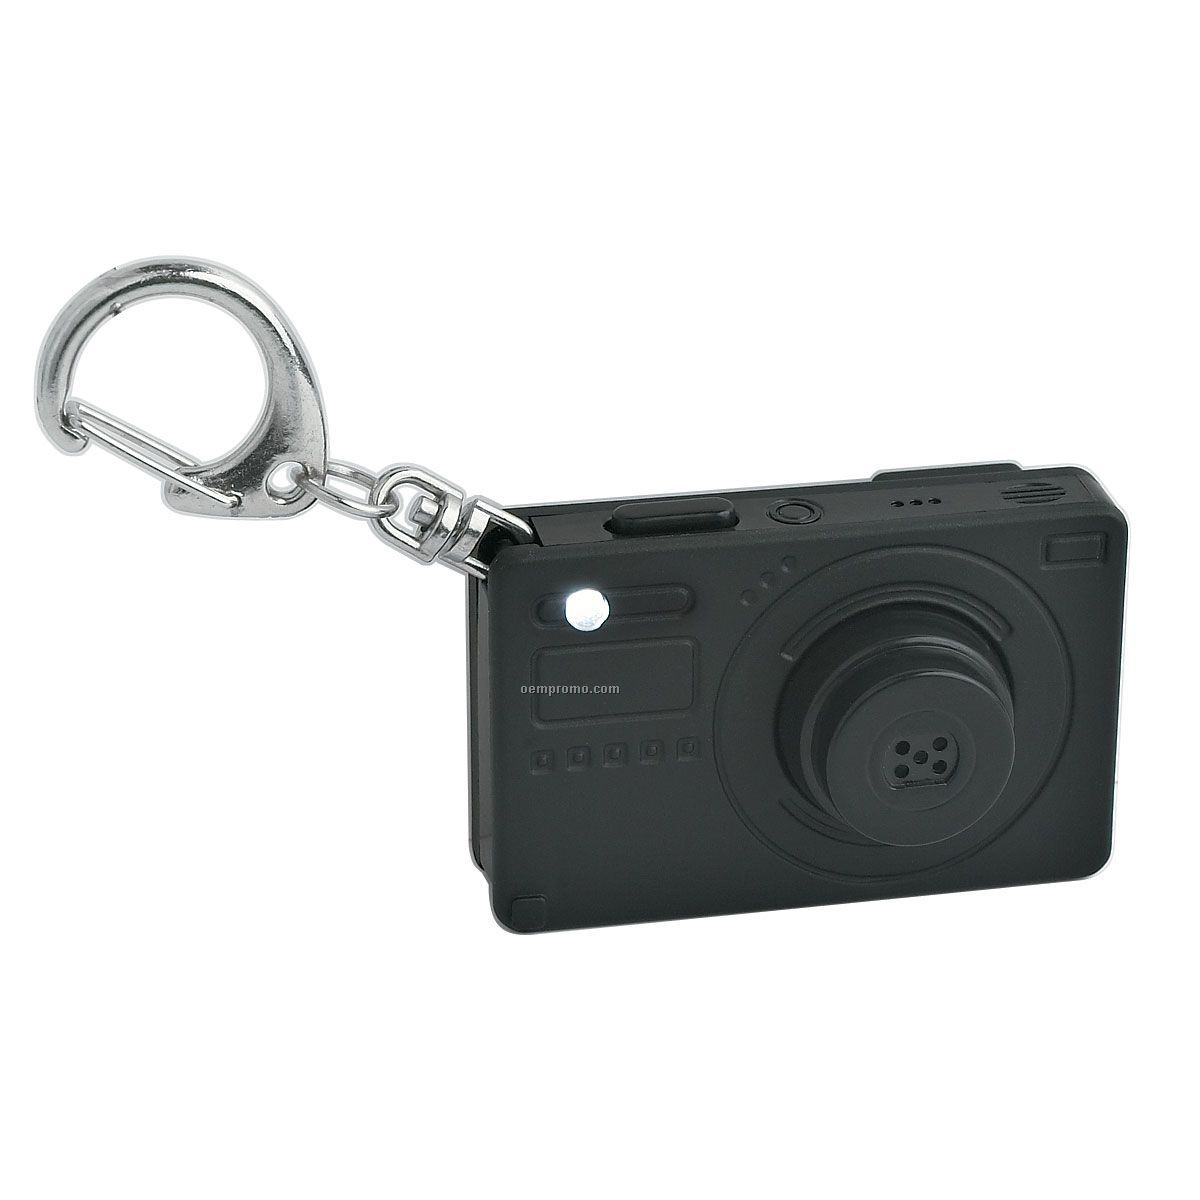 Keychain Camera W/ Light & Sound - Black